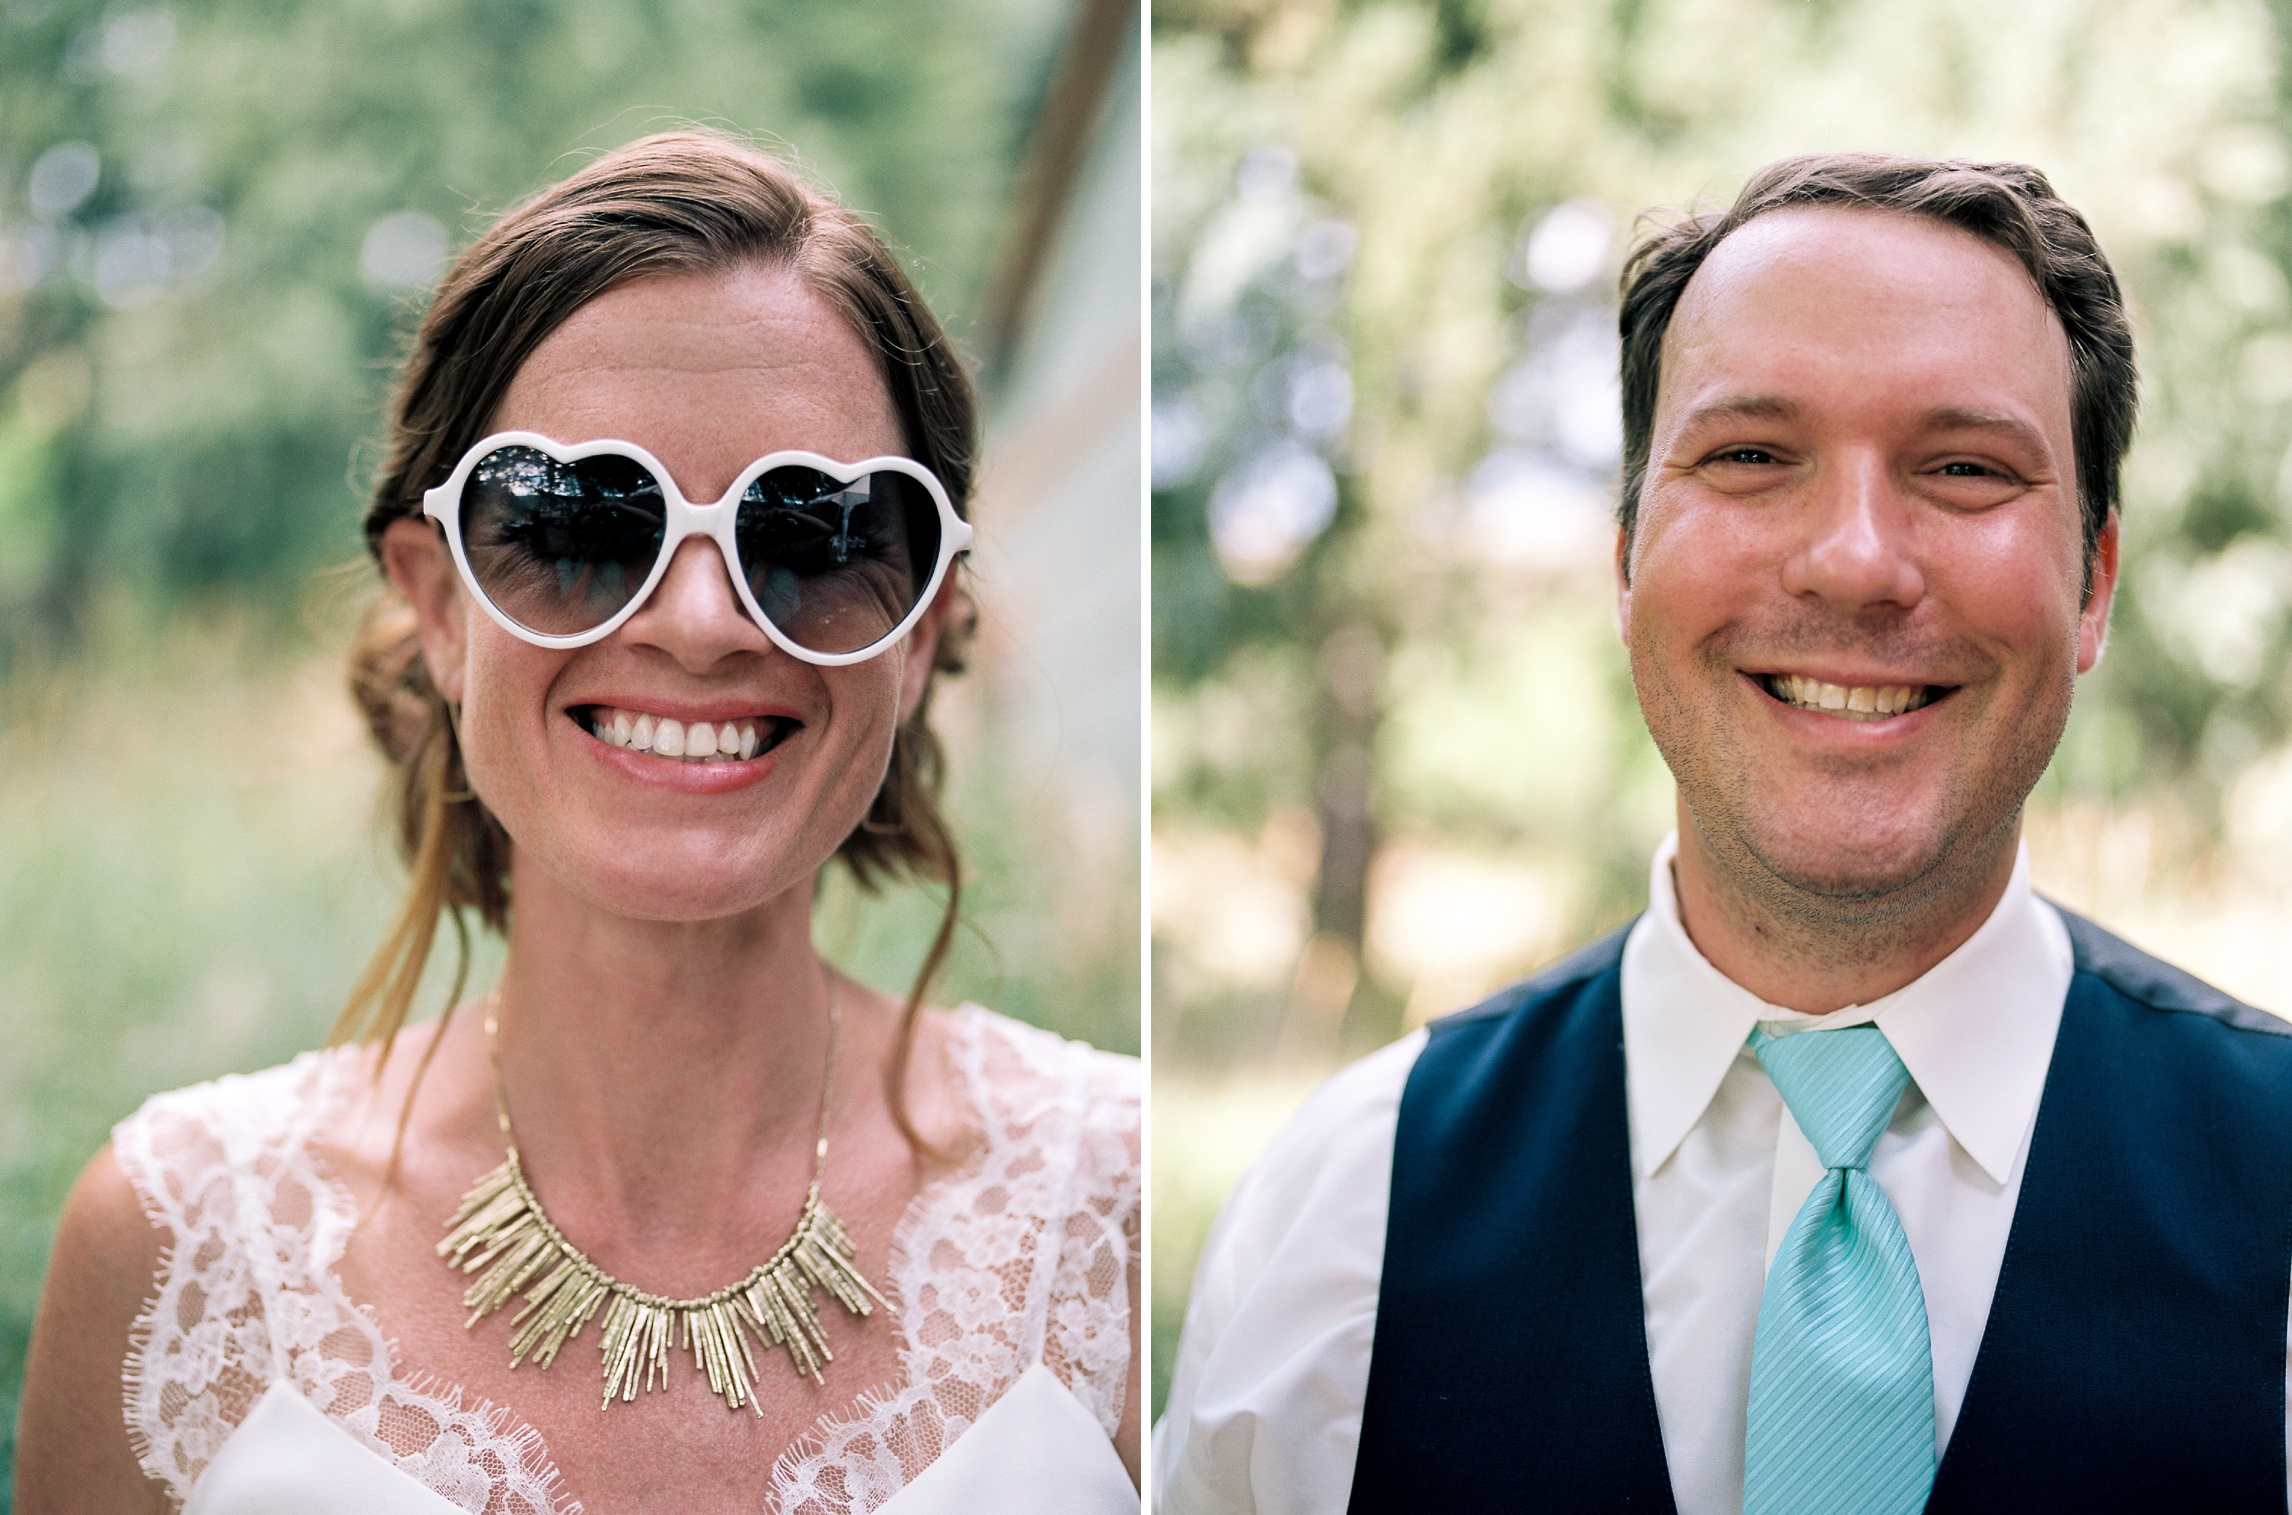 Dana and Cody on their warm summer wedding day afternoon in Fort Collins, Colorado. Wedding photography by Sonja Salzburg of Sonja K Photography.